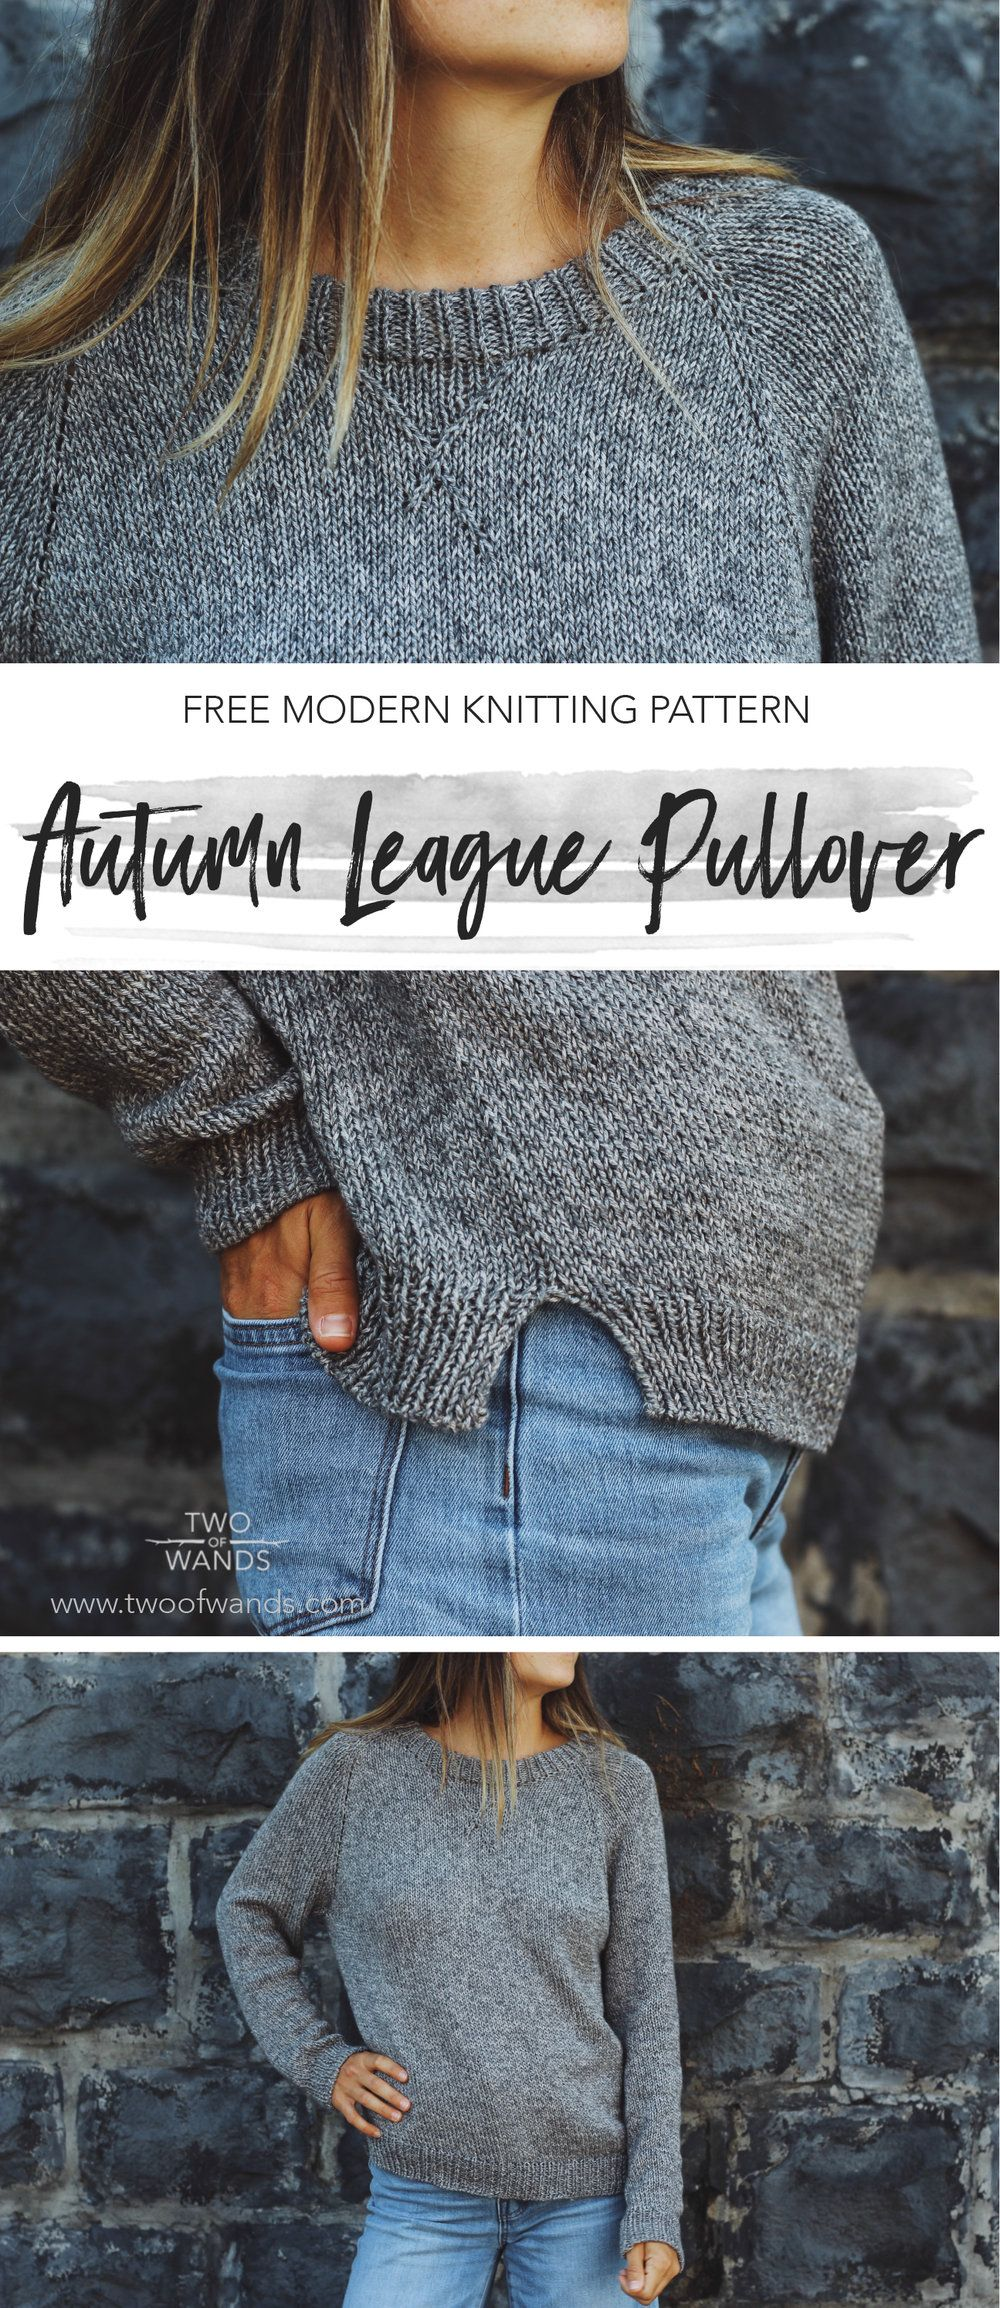 a9242ba4c Autumn League Pullover pattern by Two of Wands